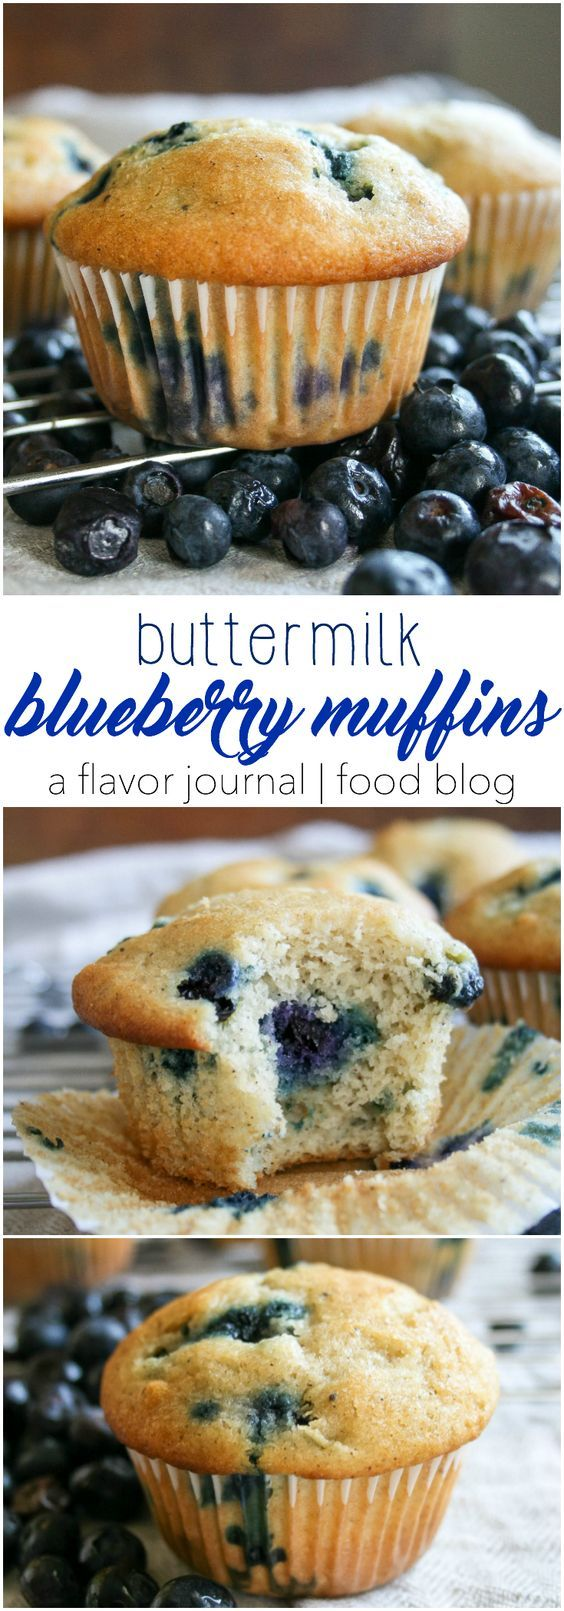 Fluffy Warm Delicious Blueberry Muffins Made With Buttermilk These Are A Classic Breakfast Or Buttermilk Recipes Blue Berry Muffins Muffin Recipes Blueberry